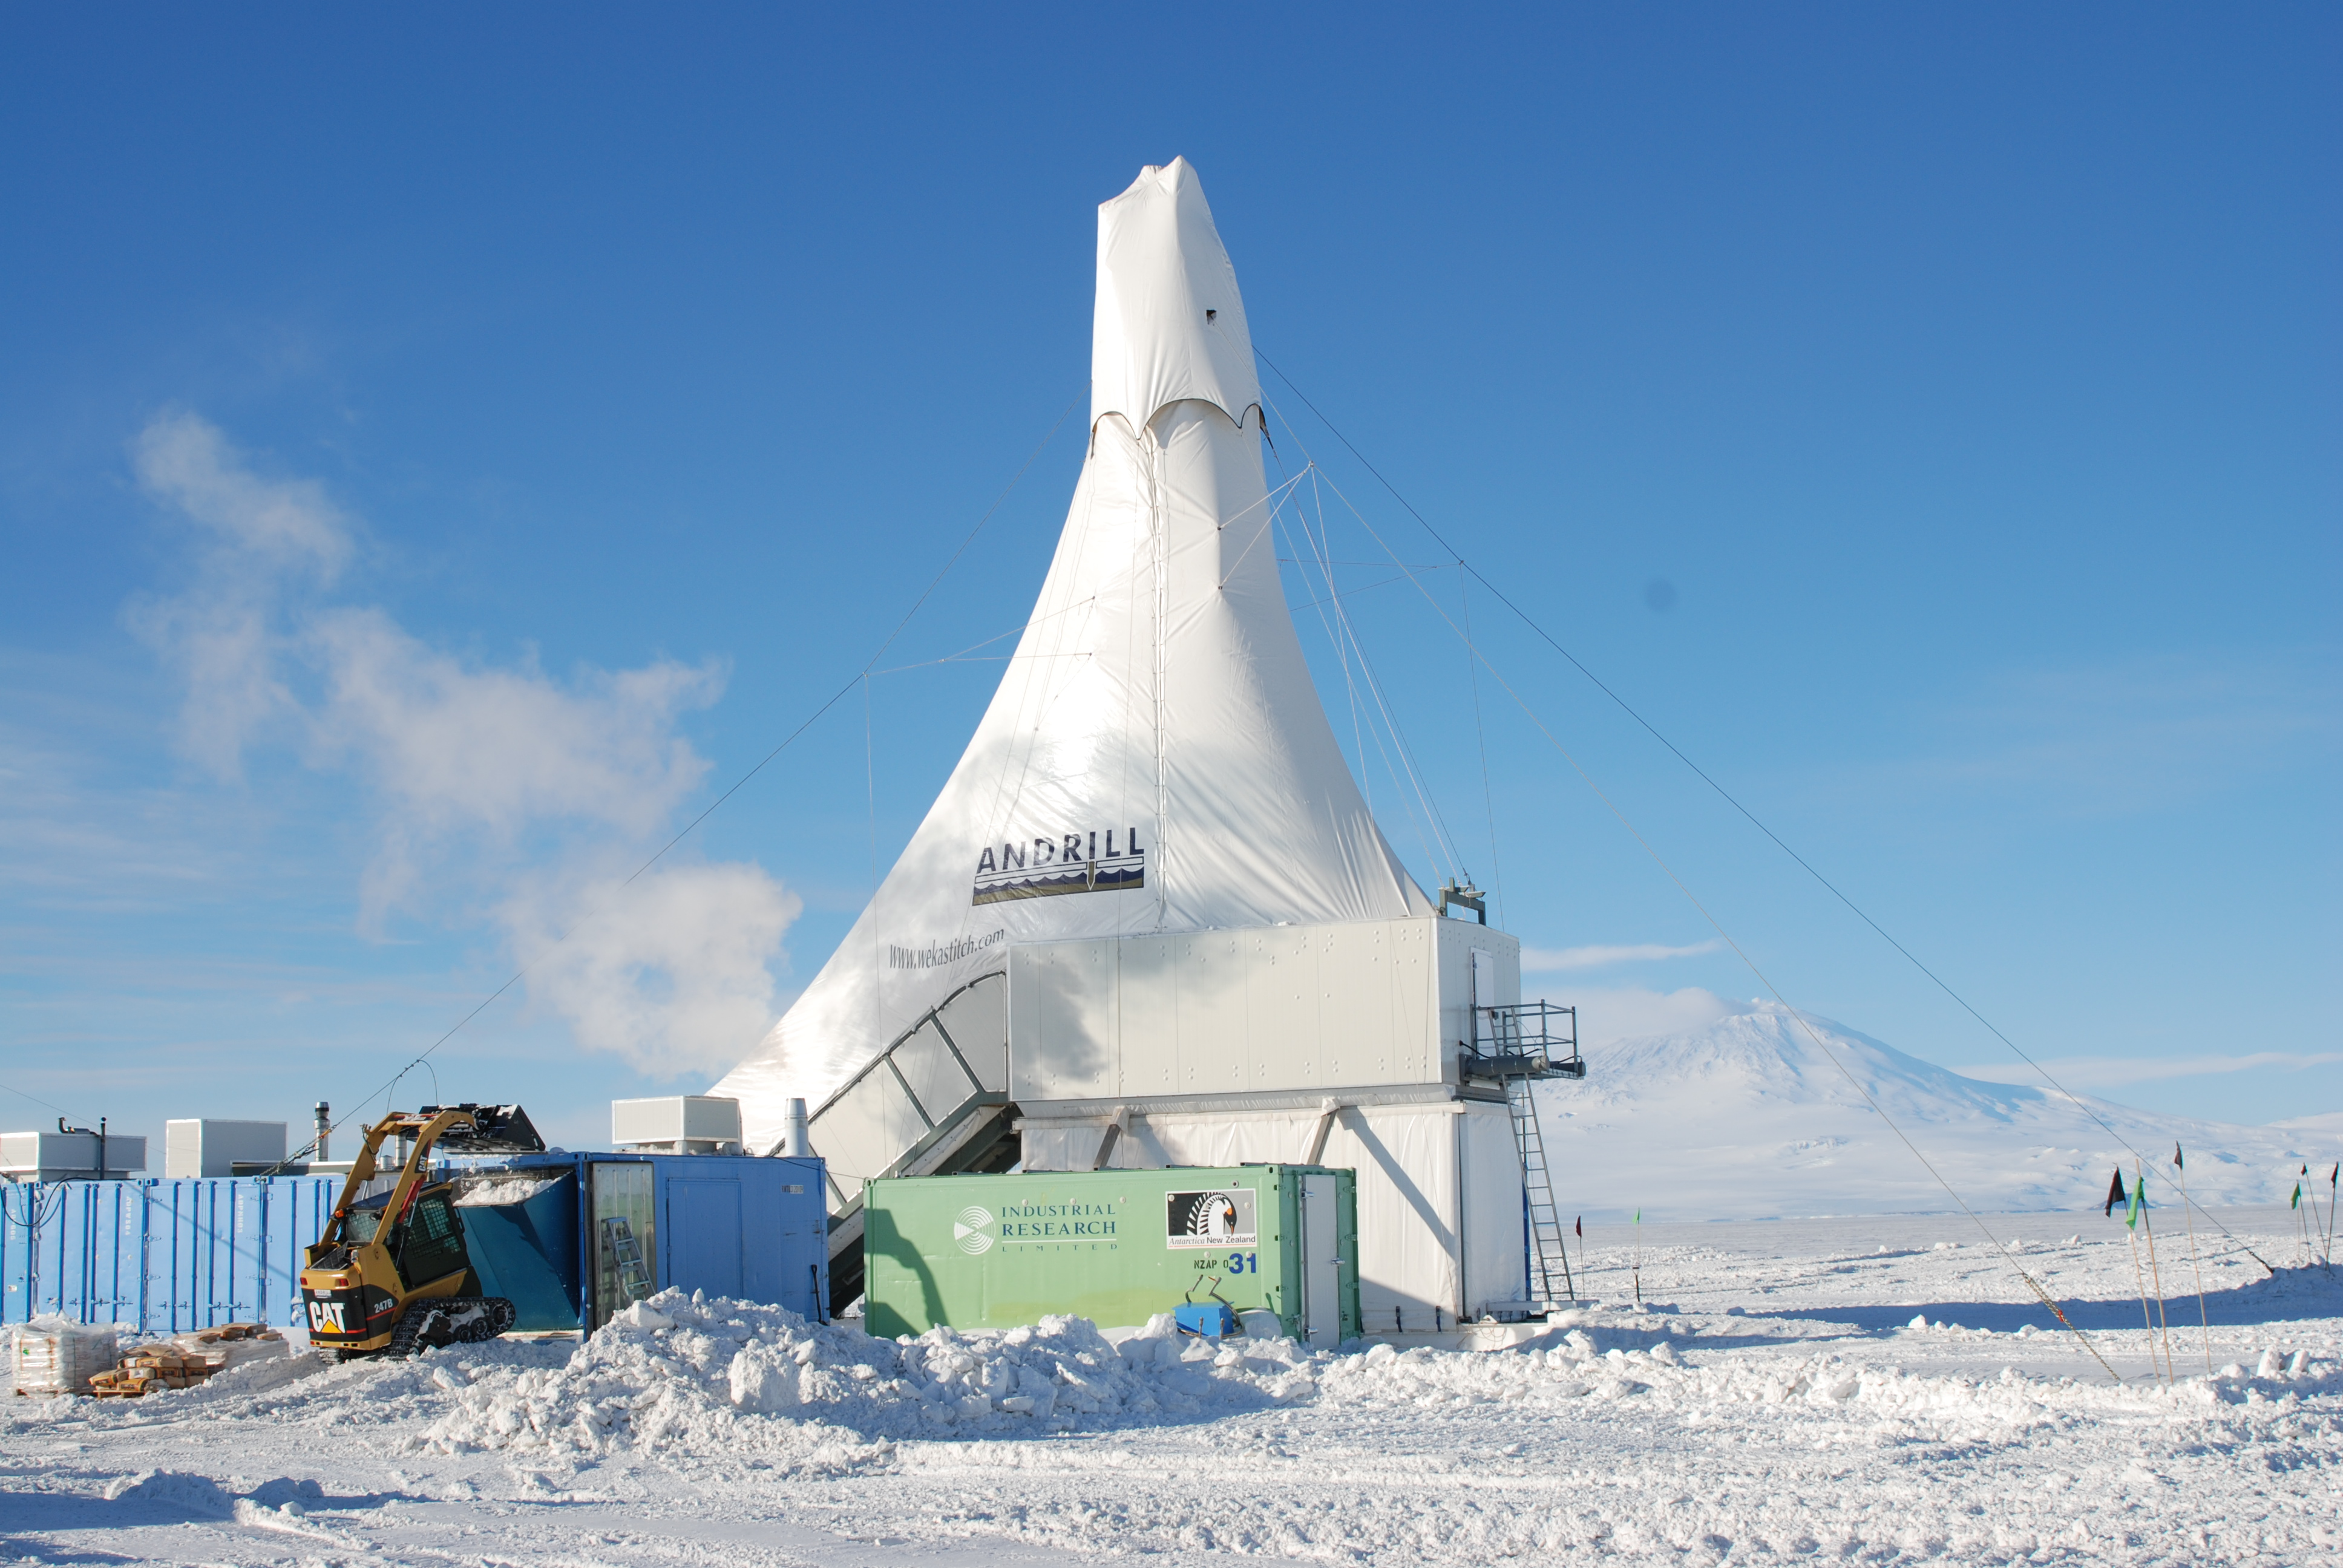 The ANDRILL project on the Ross Ice Shelf